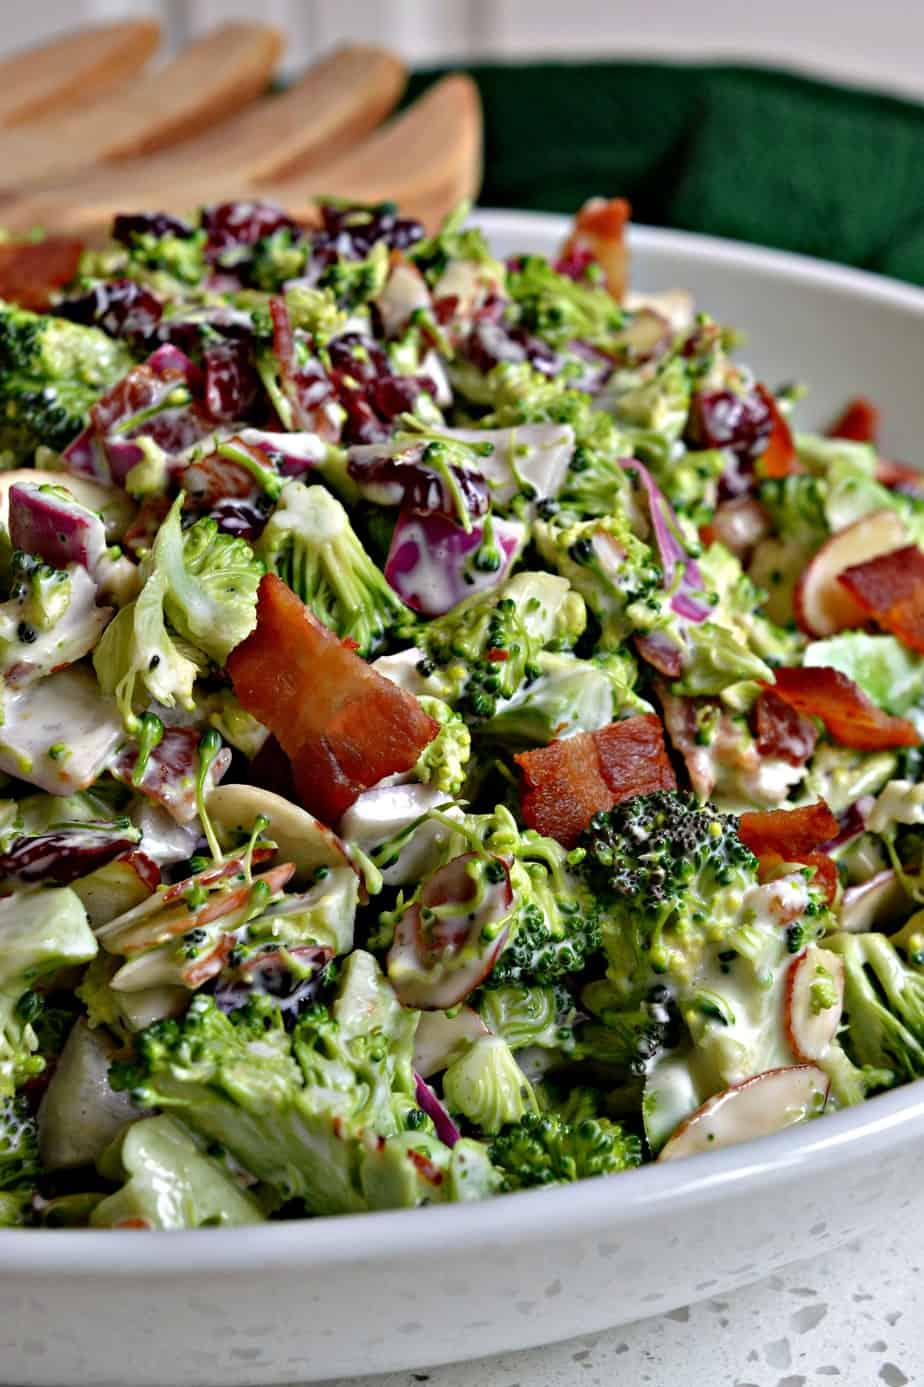 Broccoli salad is a refreshing, crisp summer salad topped with bacon and a creamy dressing